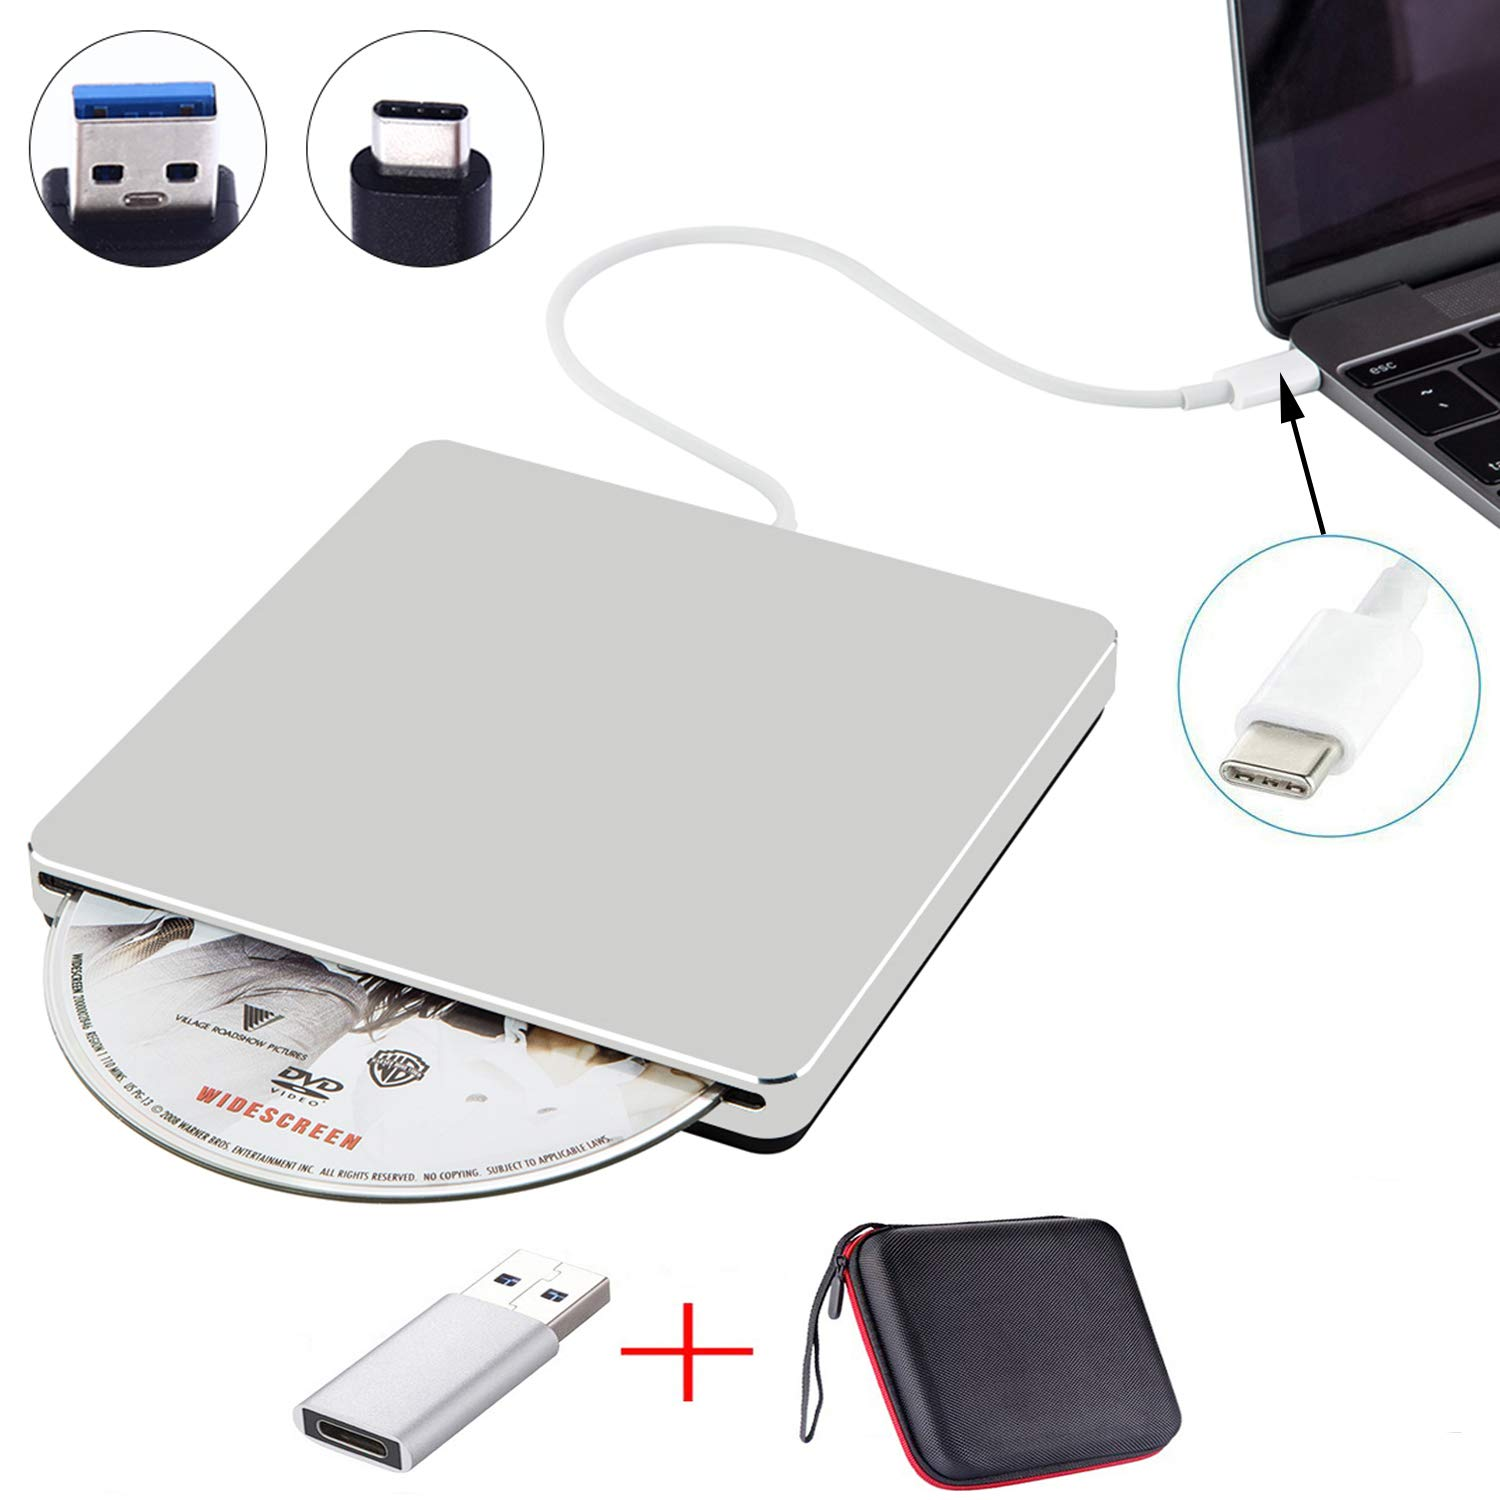 NOLYTH External DVD Drive USB C Slot-in External CD Drive Player Burner for Laptop/Mac/MacBook Pro/Air/Windows Made with Alumium Alloy Supported DVD±RW/CD±RW by NOLYTH